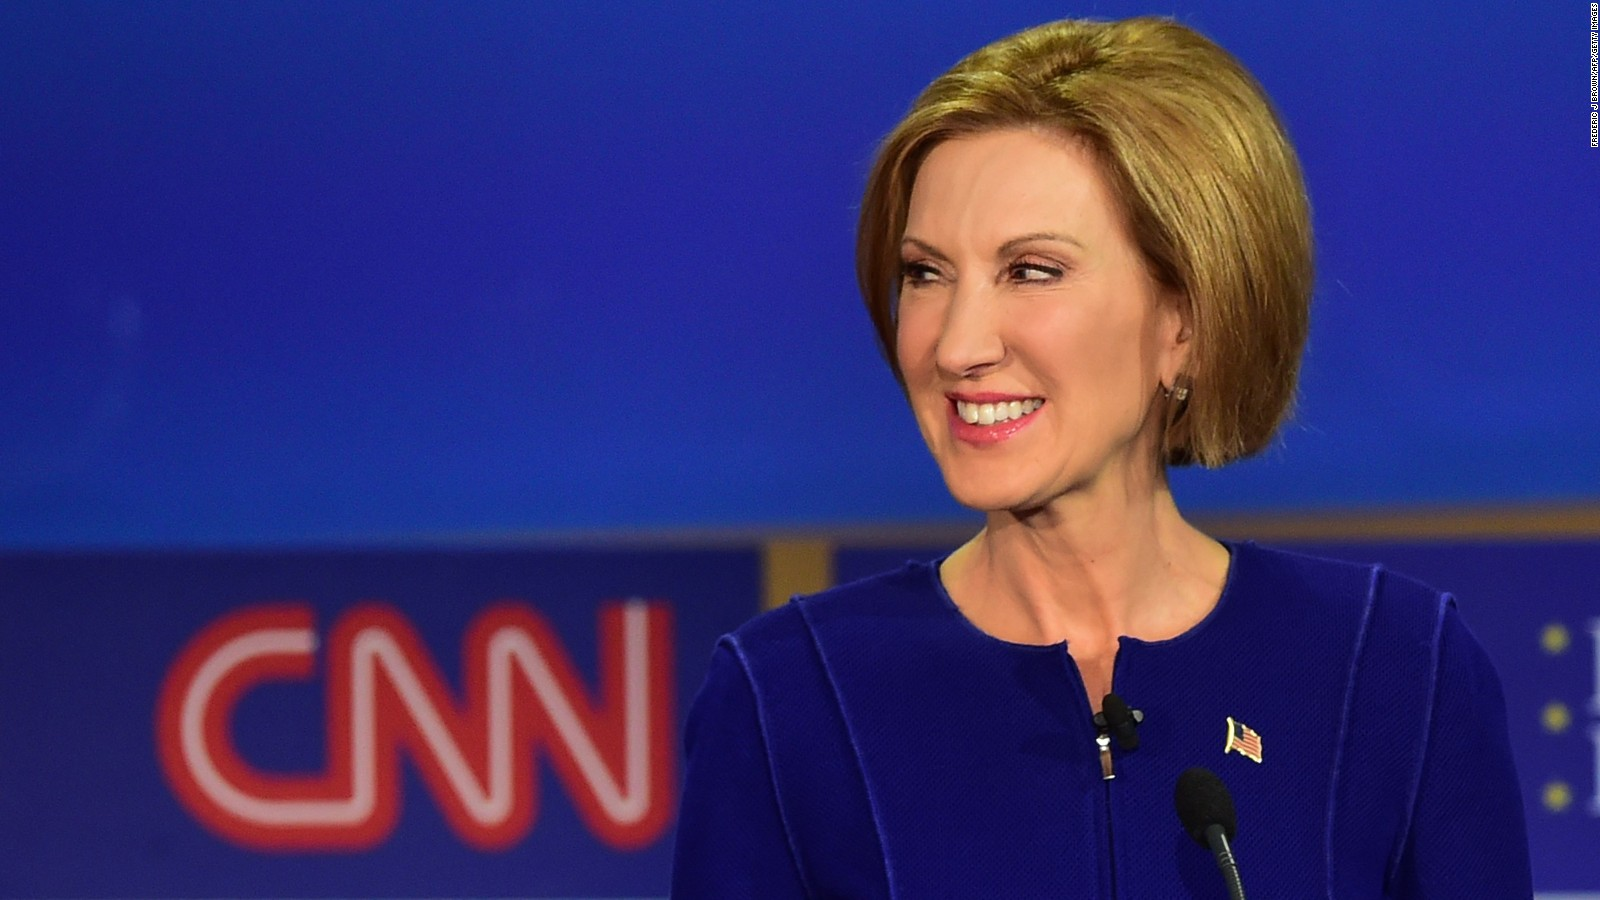 Can the Republican debate save Carly Fiorina?